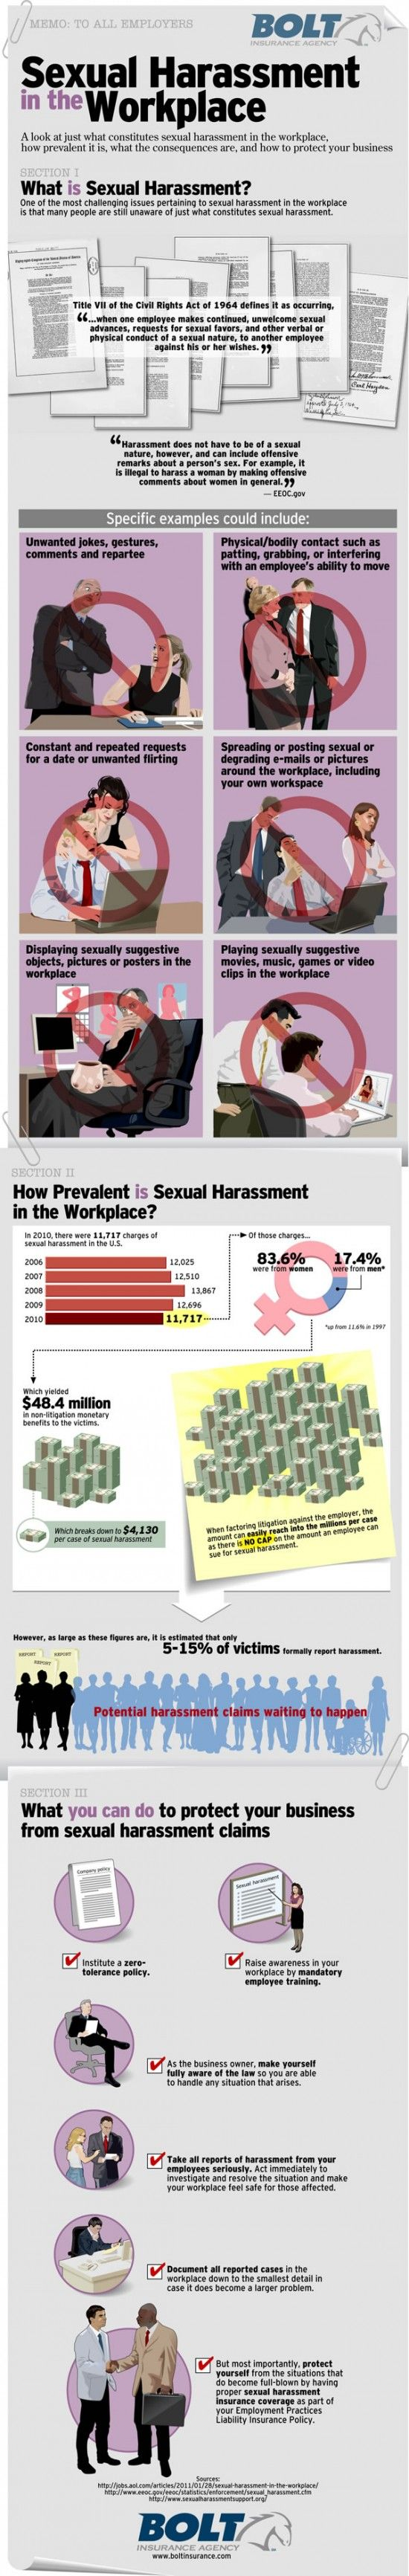 Essay sexual harassment in the workplace